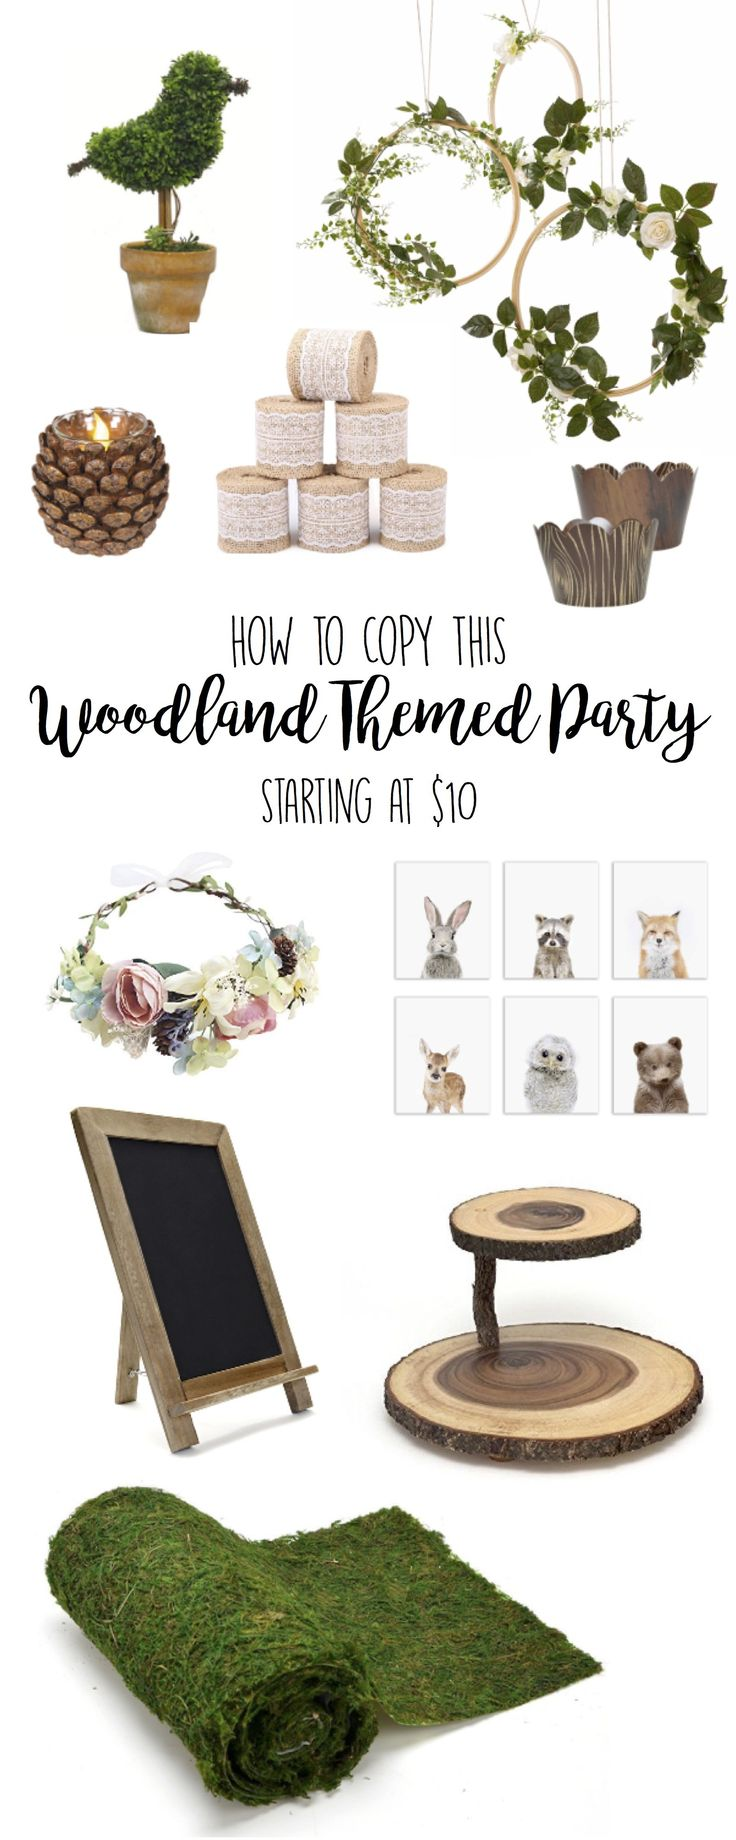 Woodland Party, Ideas, Birthday, Decorations, Food, Theme, 1st birthday, girl, boy, Woodland Wedding, Ideas, Favors, Centerpiece, Event, Baby Shower, Engagement Party, Forest, Rustic, Elegant, Classy, 30th birthday, Sweet 16, Gender Reveal, DIY, Woodland Wedding, Enchanted, Forest Theme, Table, Graduation, Vintage #woodlandshower #woodlandparty #woodlandtheme #birthdaypartyideas #classy